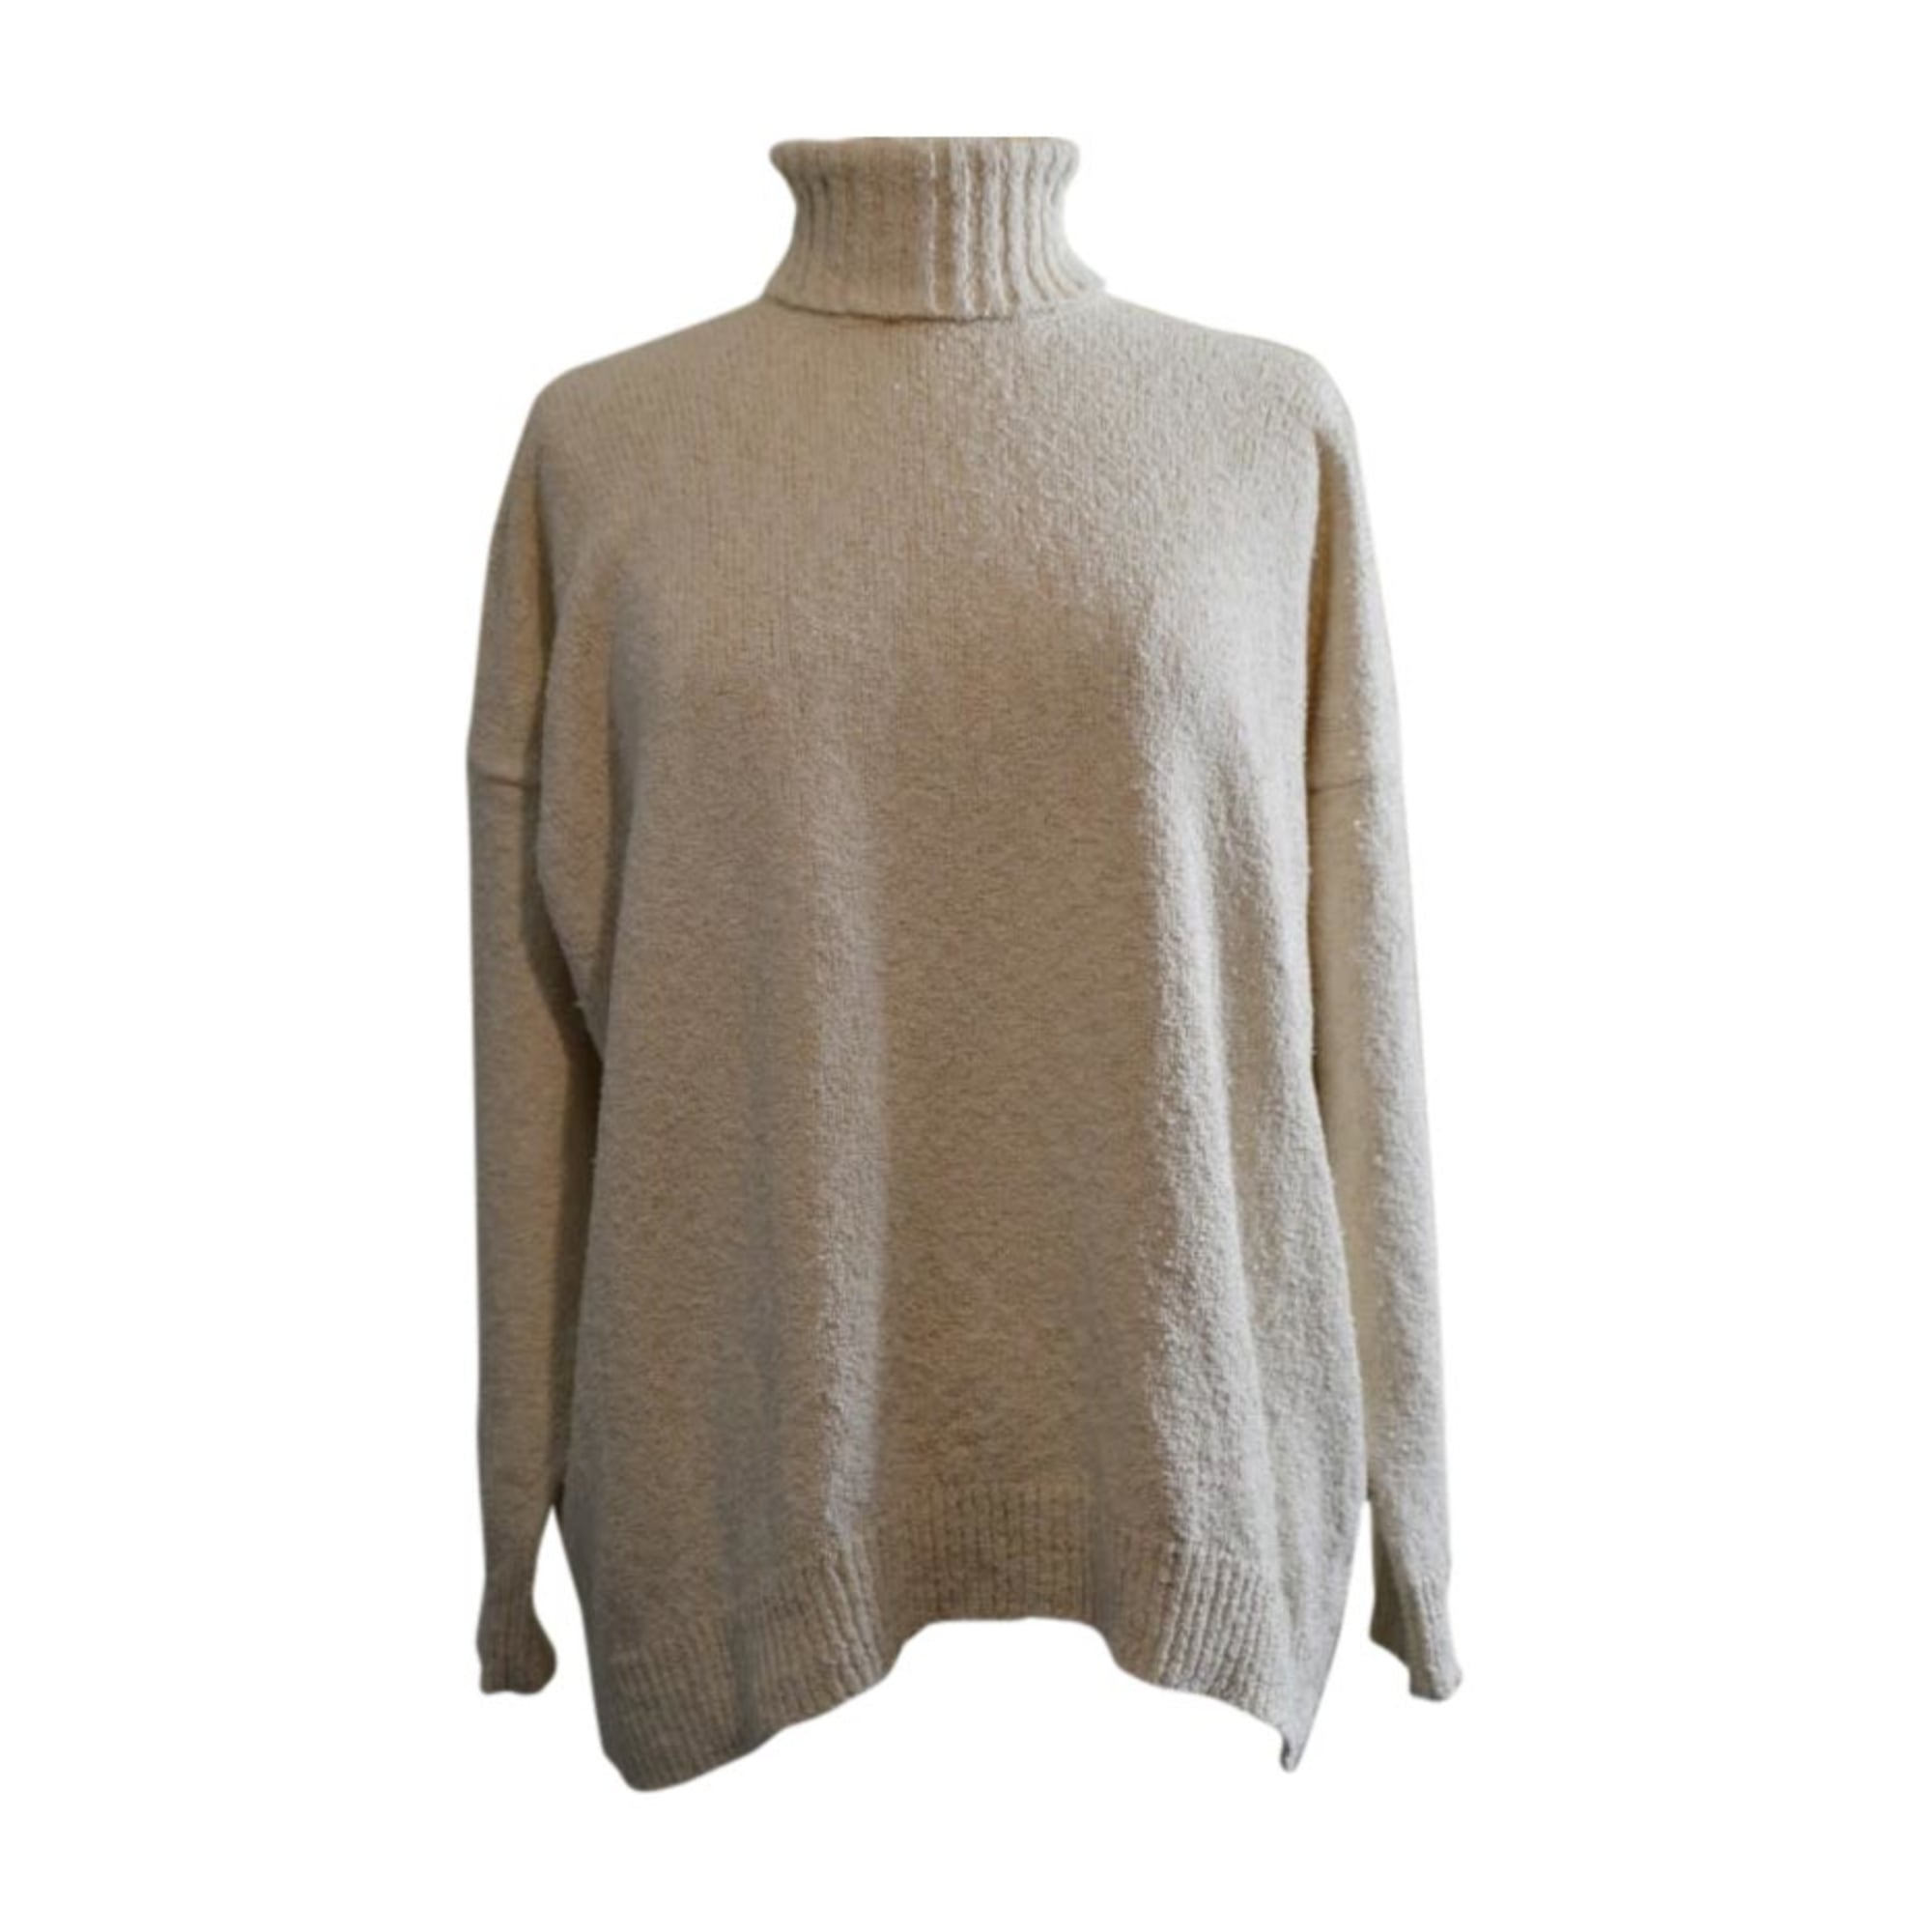 Sweater MICHAEL KORS White, off-white, ecru